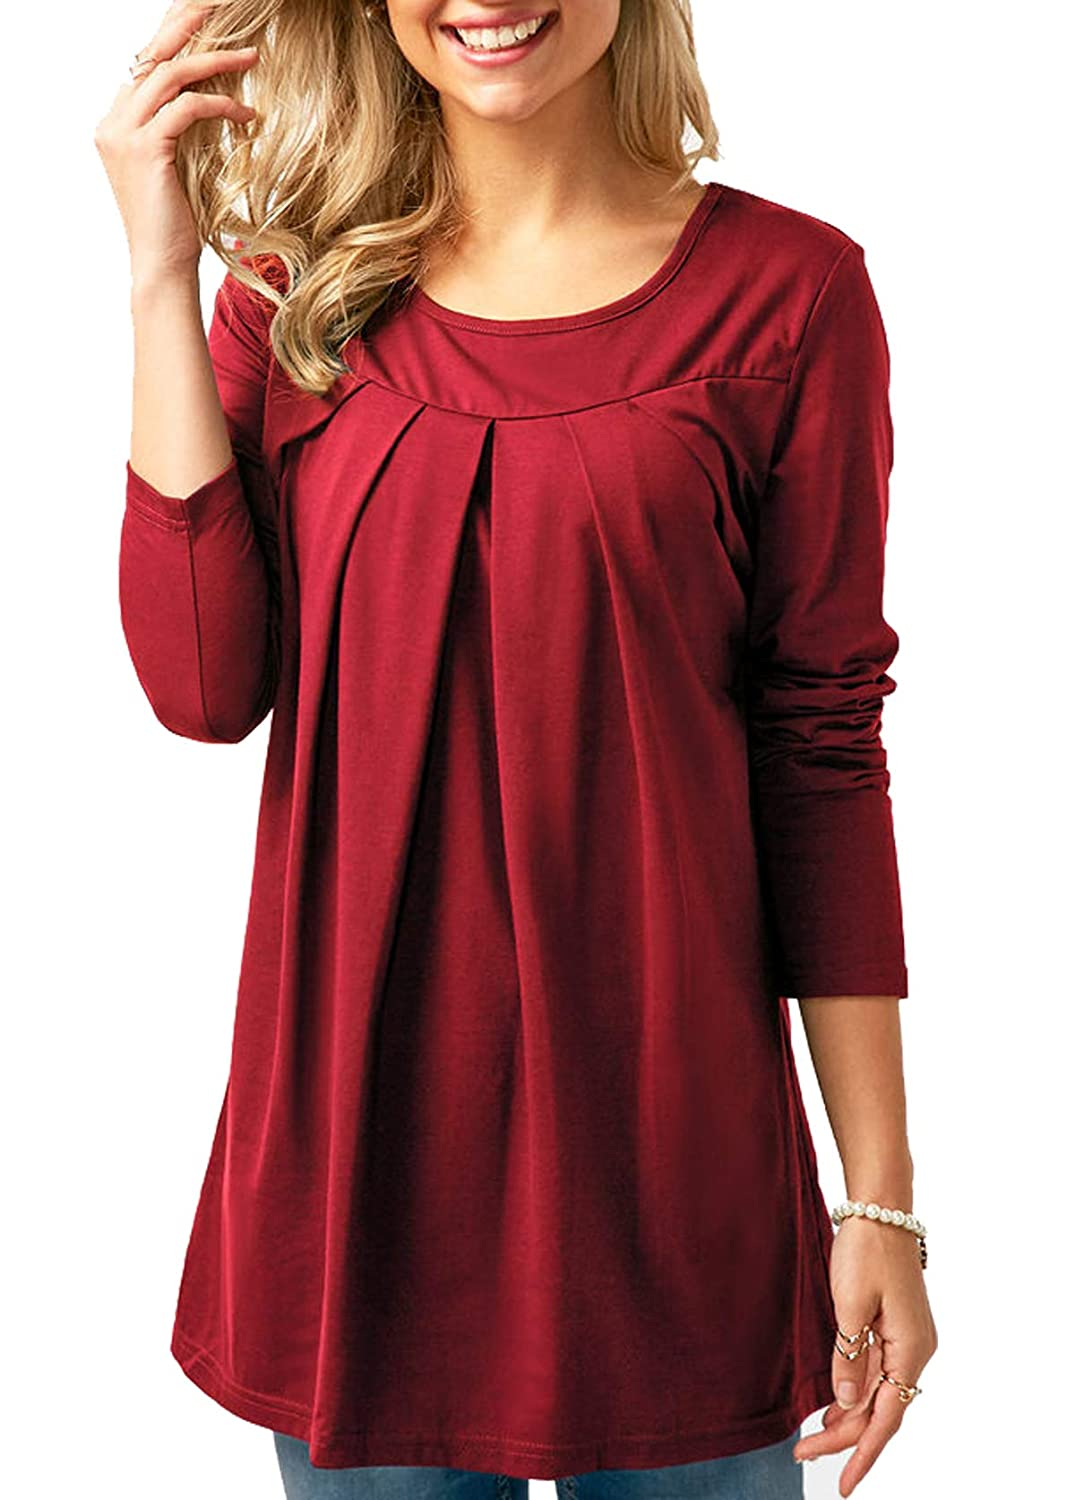 onlypuff Womens Blouses Long Sleeve Ruffle Solid Color Casual Tunic Tops ca-YS0160